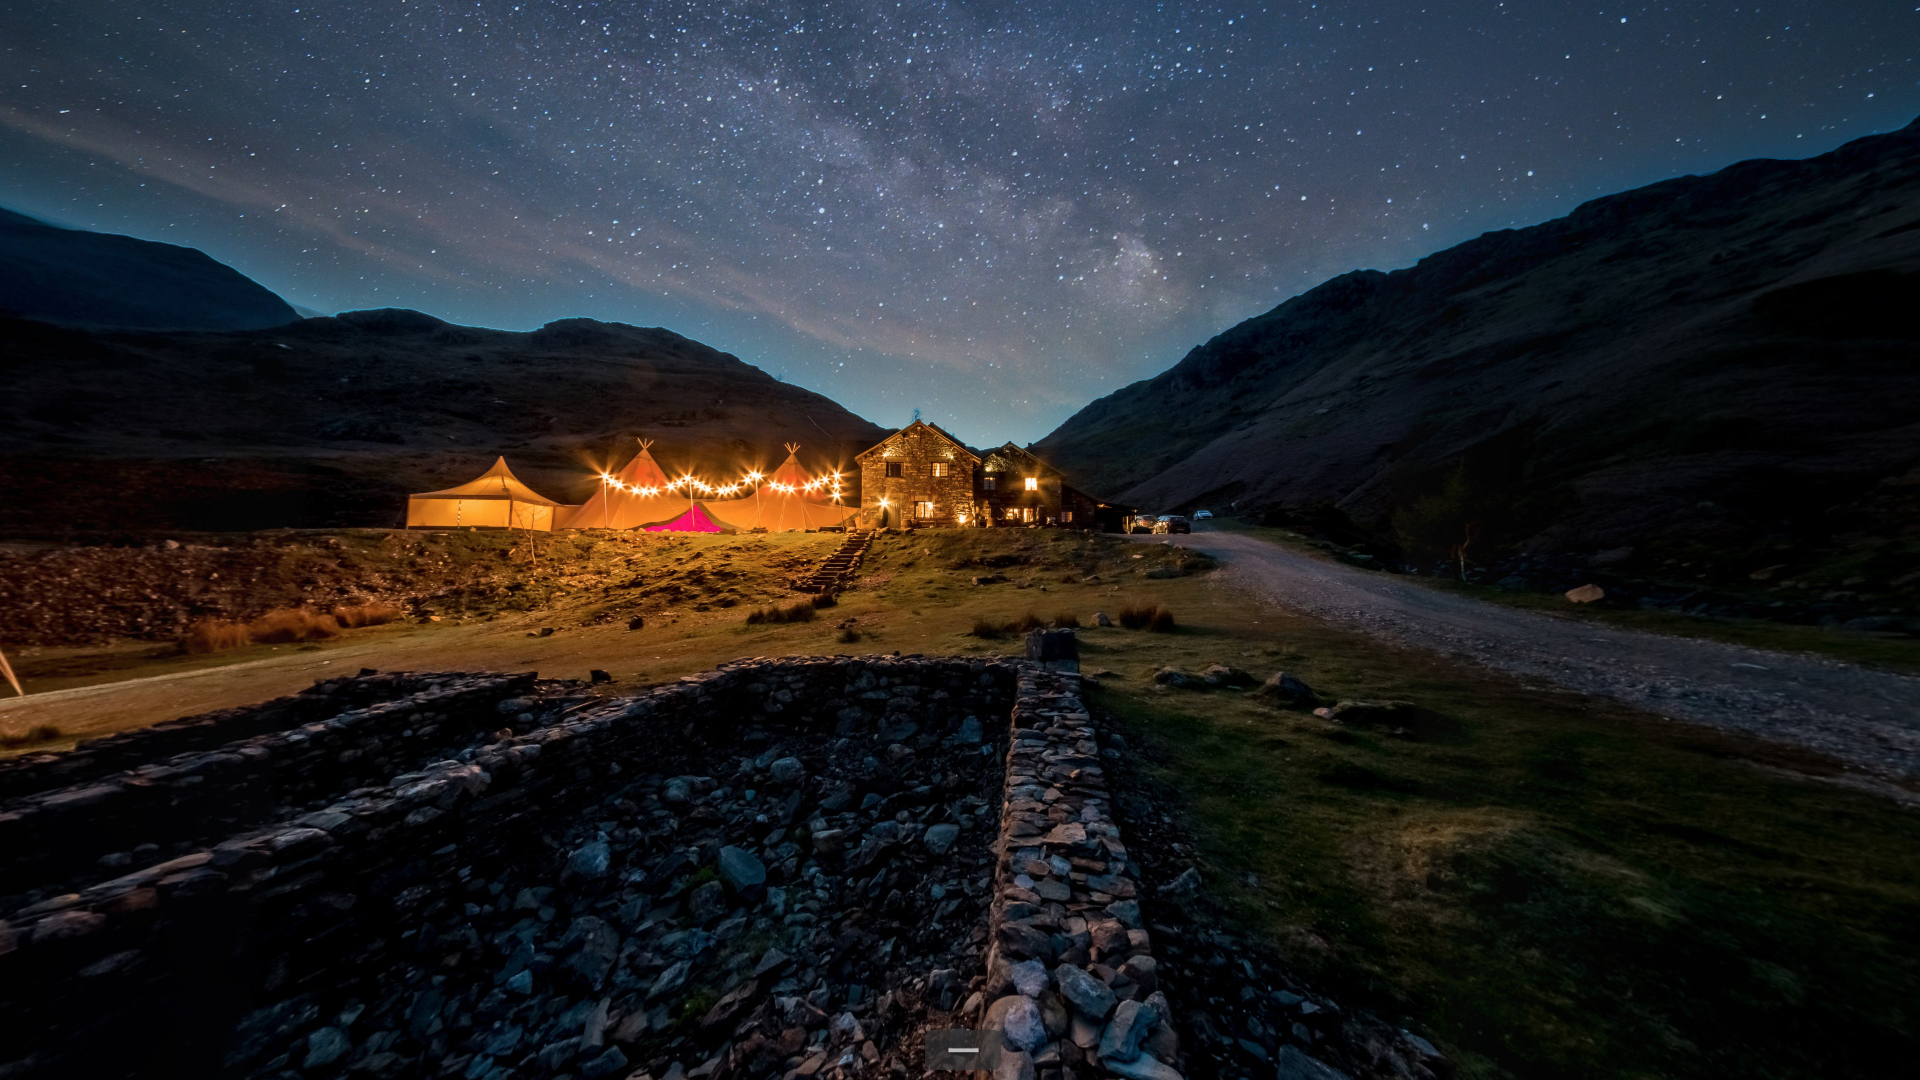 Go to Cumbria's first Dark Skies Festival at the end of February